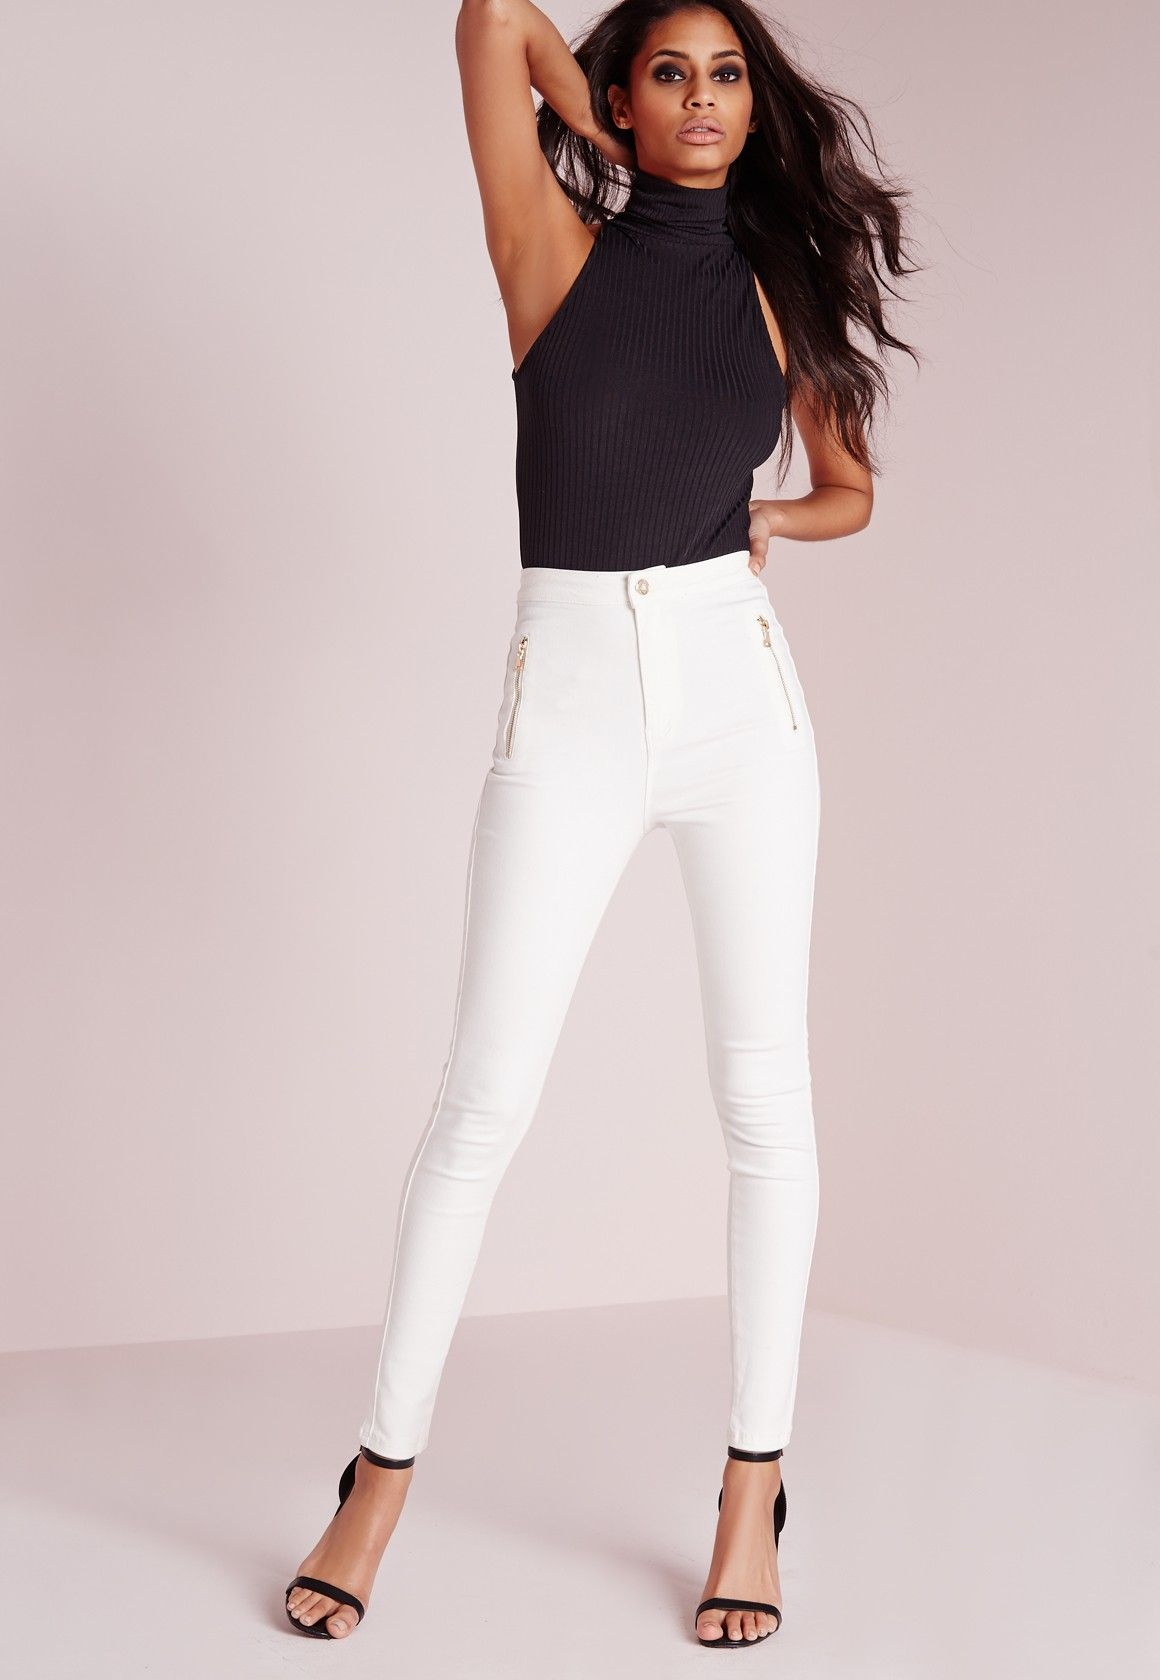 Stretch Zipped Super Missguided Waisted Vice Jeans High Skinny j5A4L3Rq